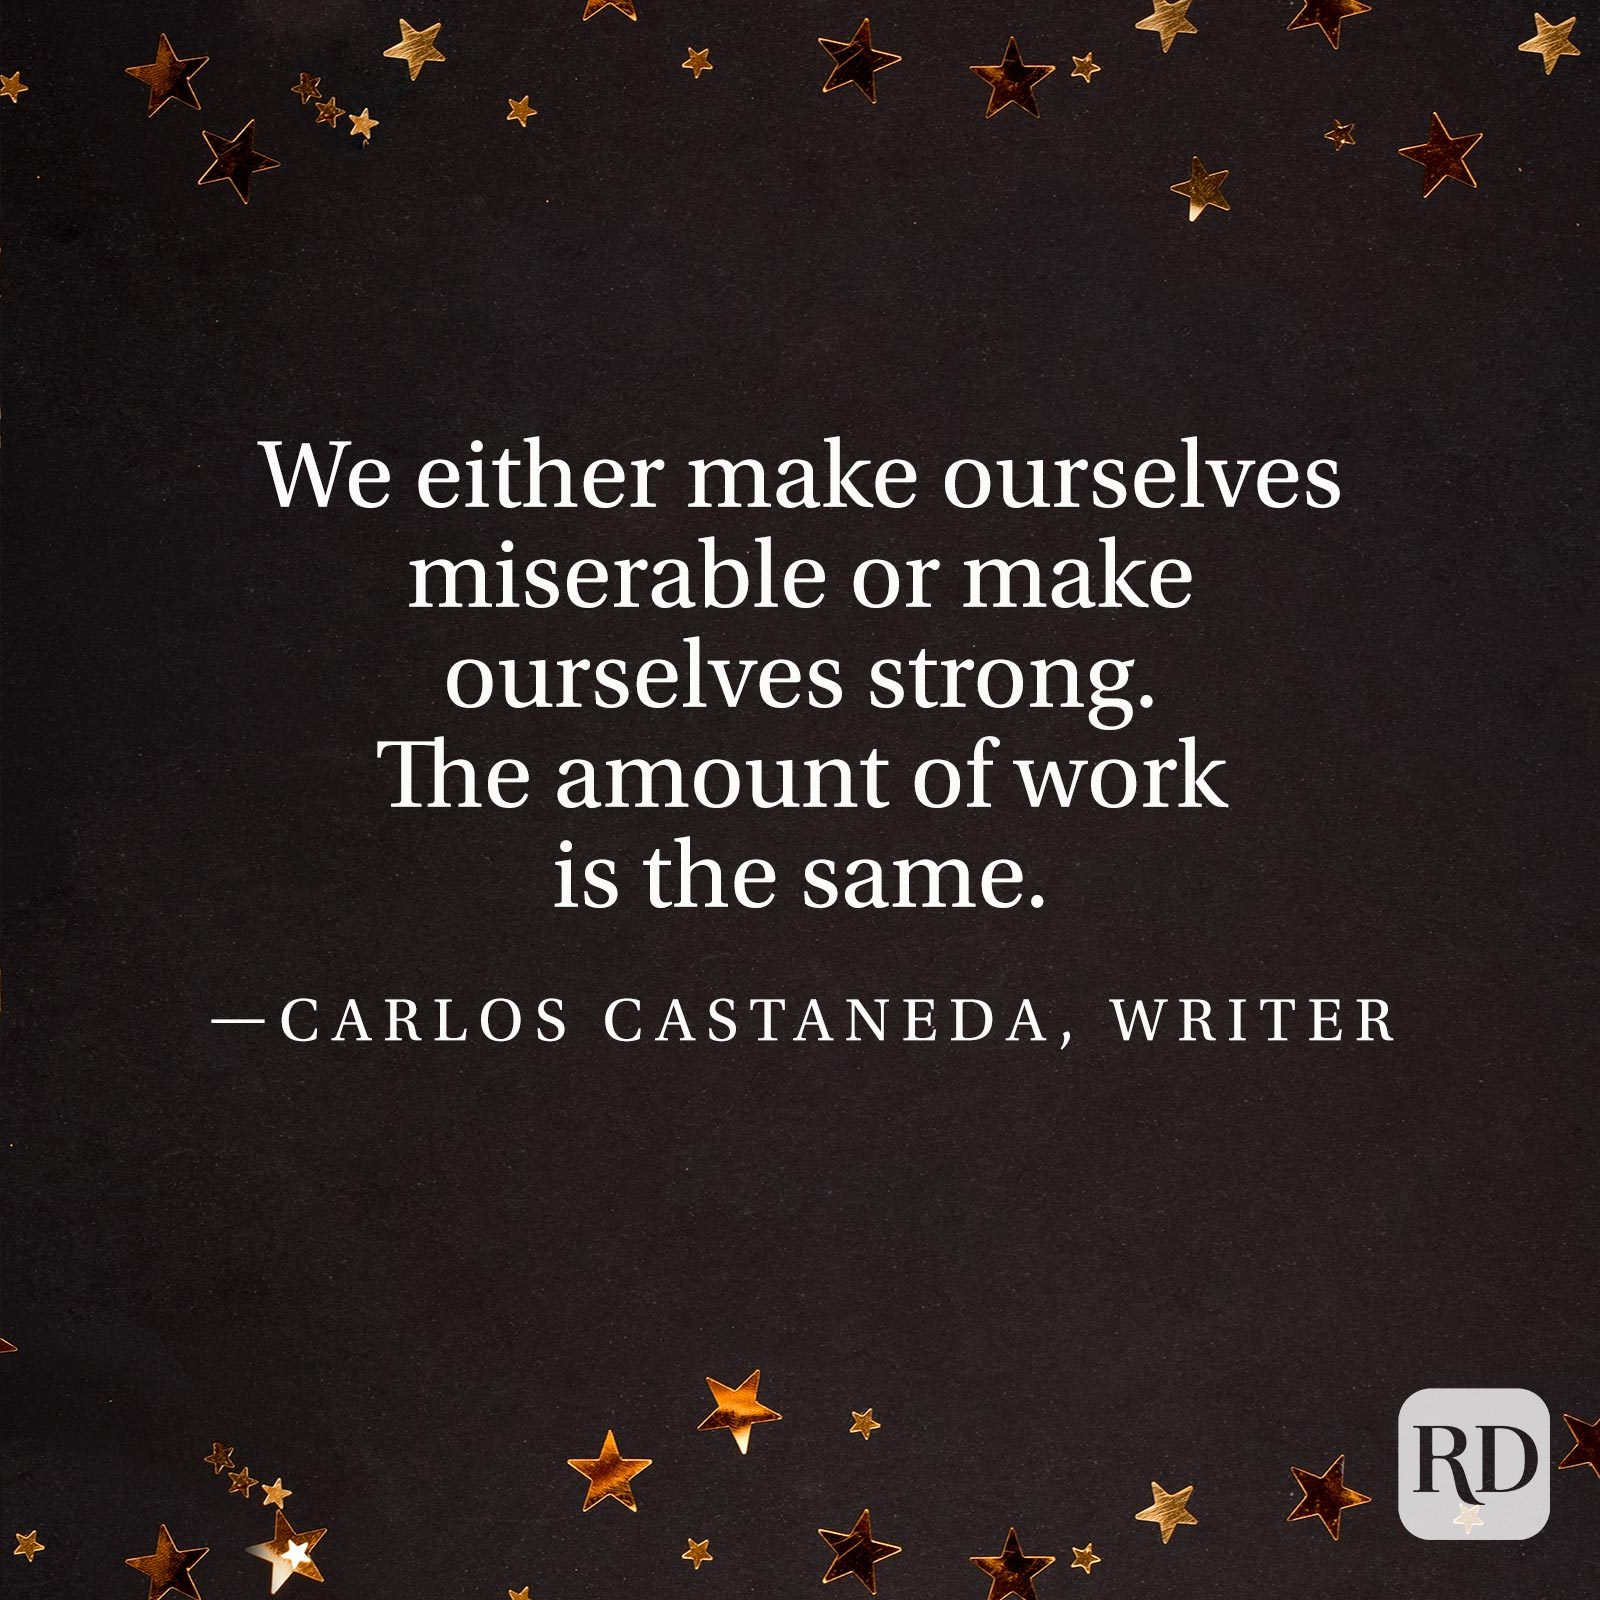 """We either make ourselves miserable or make ourselves strong. The amount of work is the same."" —Carlos Castaneda, writer"